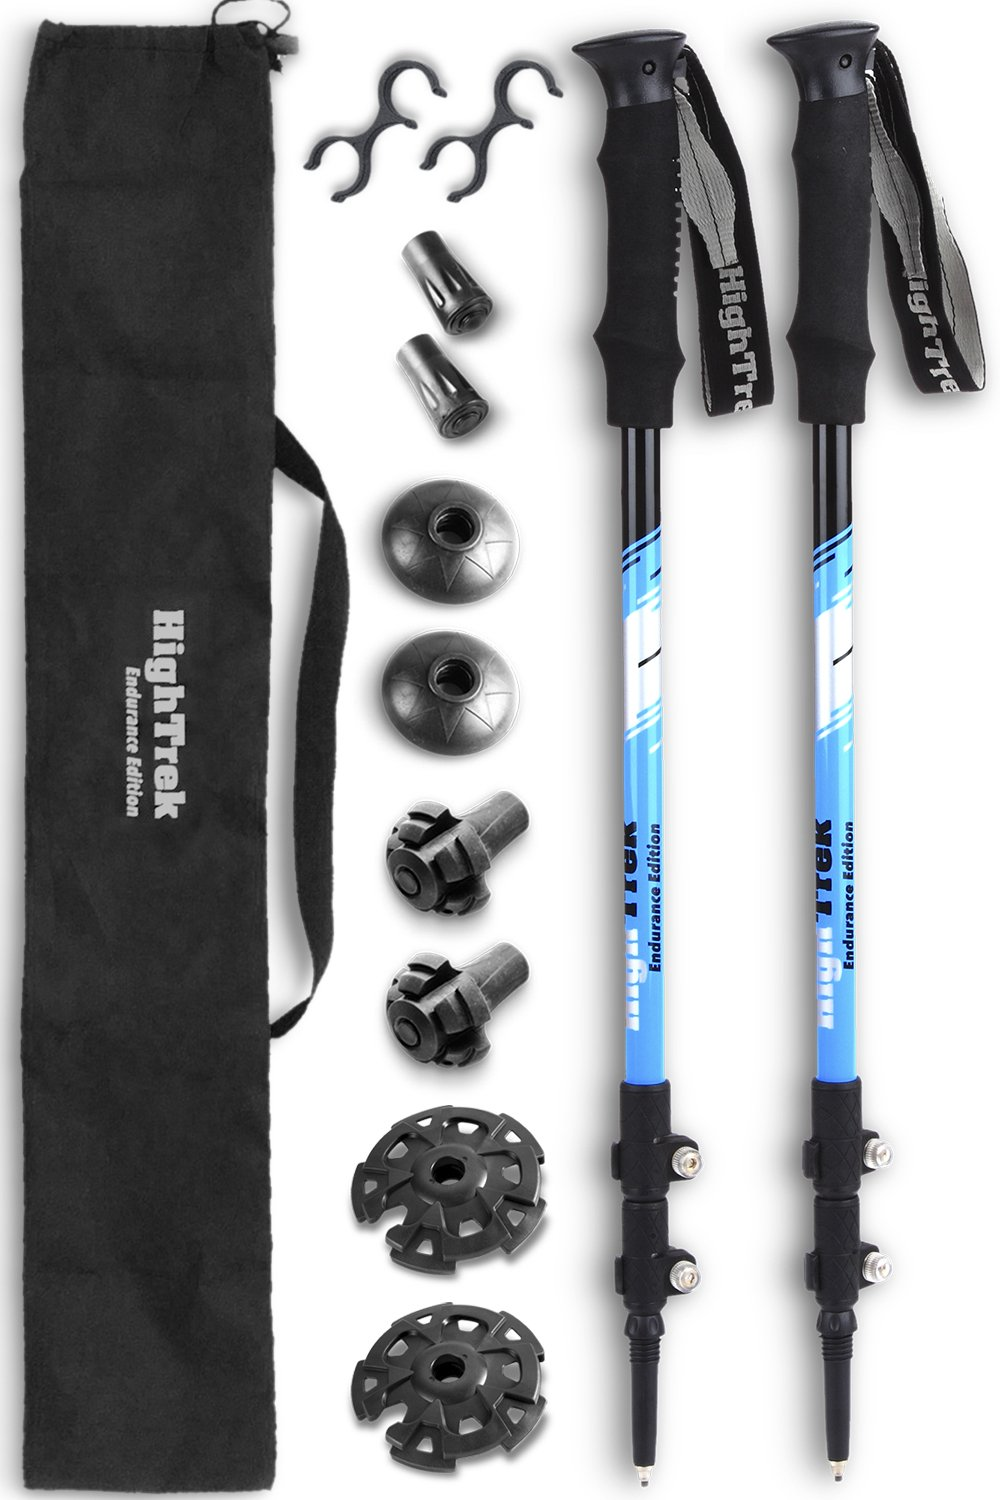 Enjoy The Outdoors High Trek Premium Ultralight Trekking Poles w//Sweat Absorbing EVA Grips Your Collapsible Hiking//Walking Sticks Come with Tungsten Tips and Flip Locks